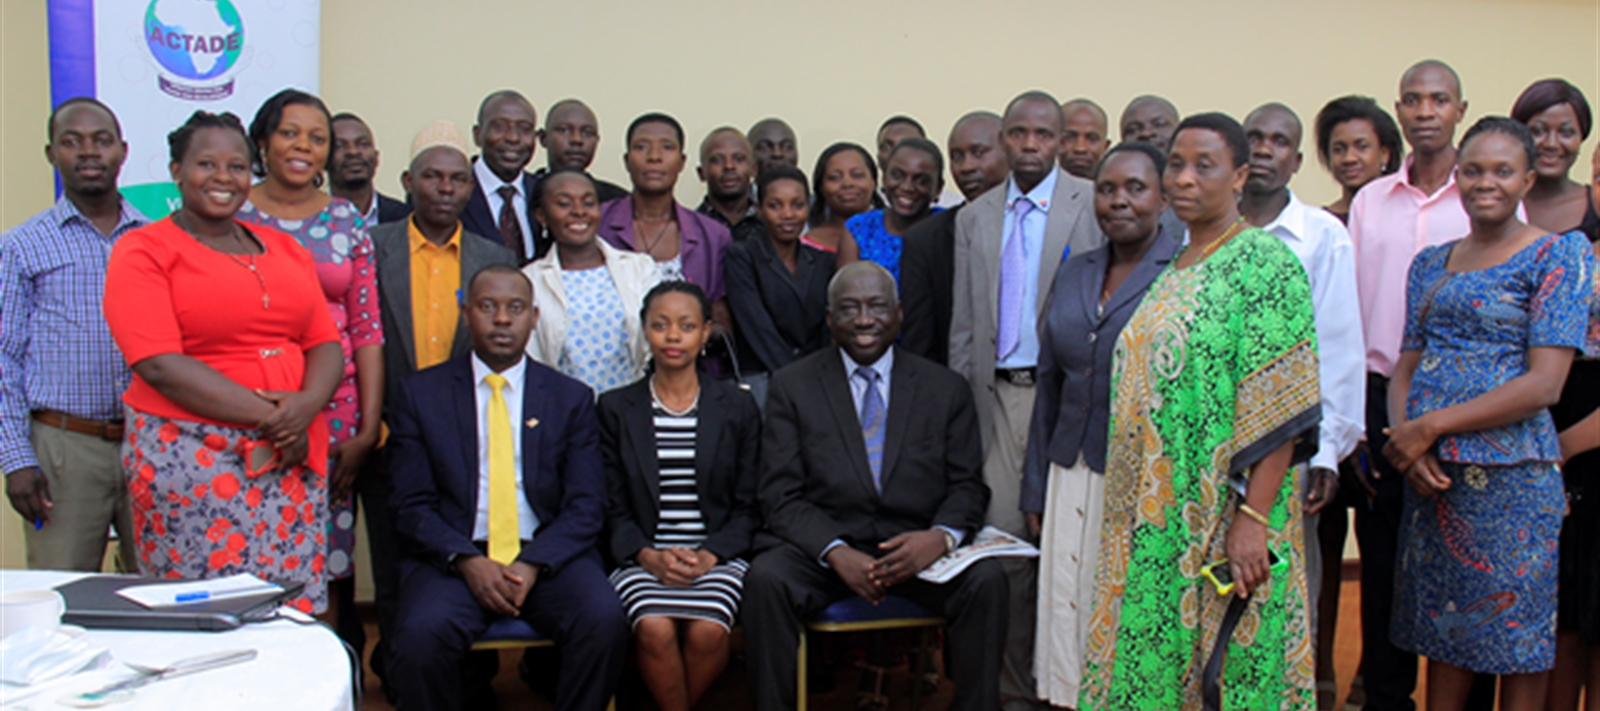 Group Photo: Hon. Onesmus Twinamasiko left, Susan Nanduddu (ED, ACTADE) and Hon. L. N. Bategeka (MP-Hoima Municipality) together with the Local leaders of Bunyoro during ACTADE's National level dialogue on Local Government budget accounatability